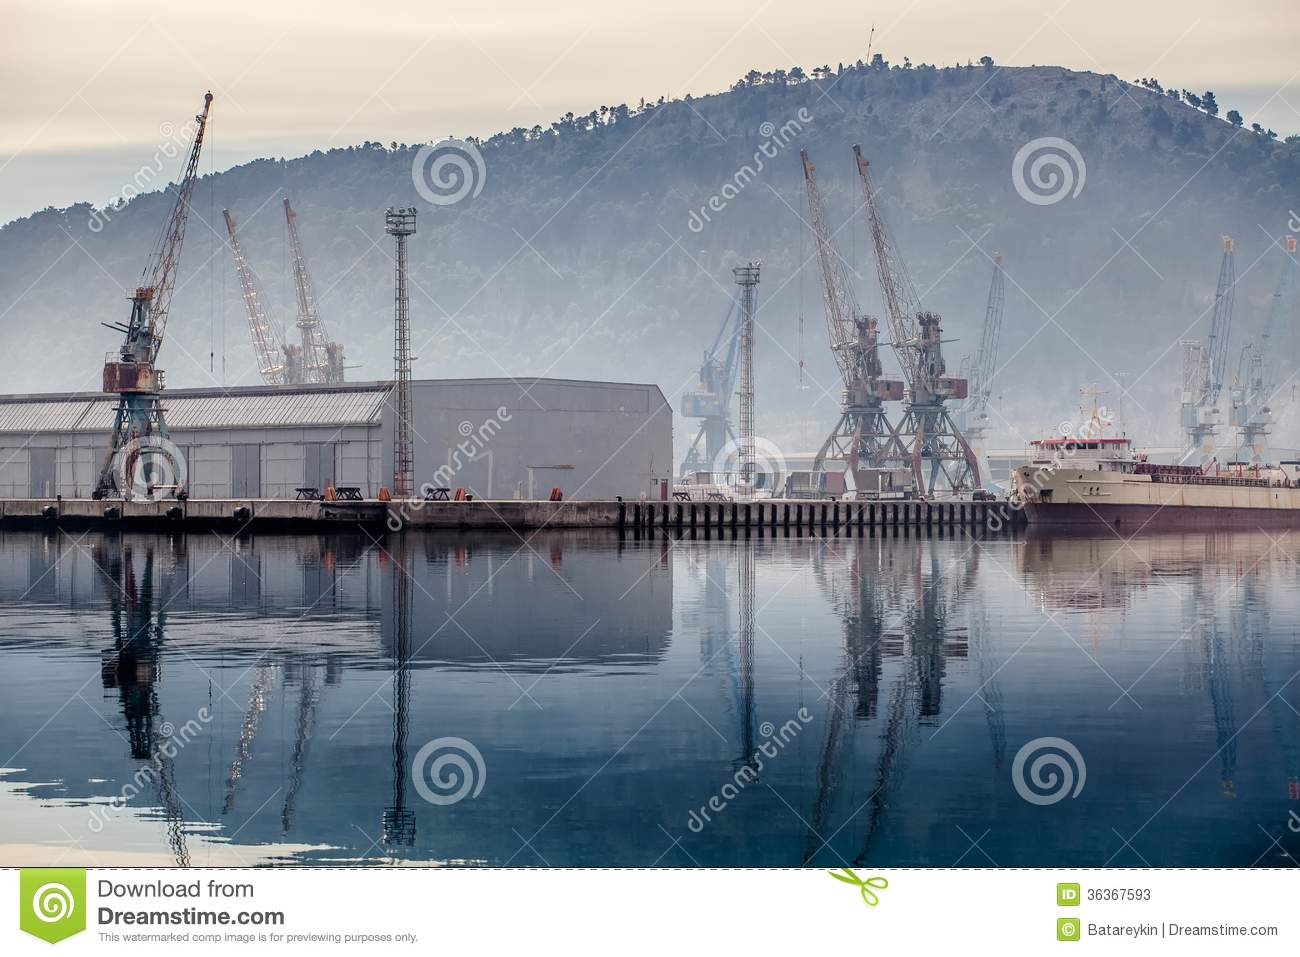 Industrial zone seaport with cranes in the fog